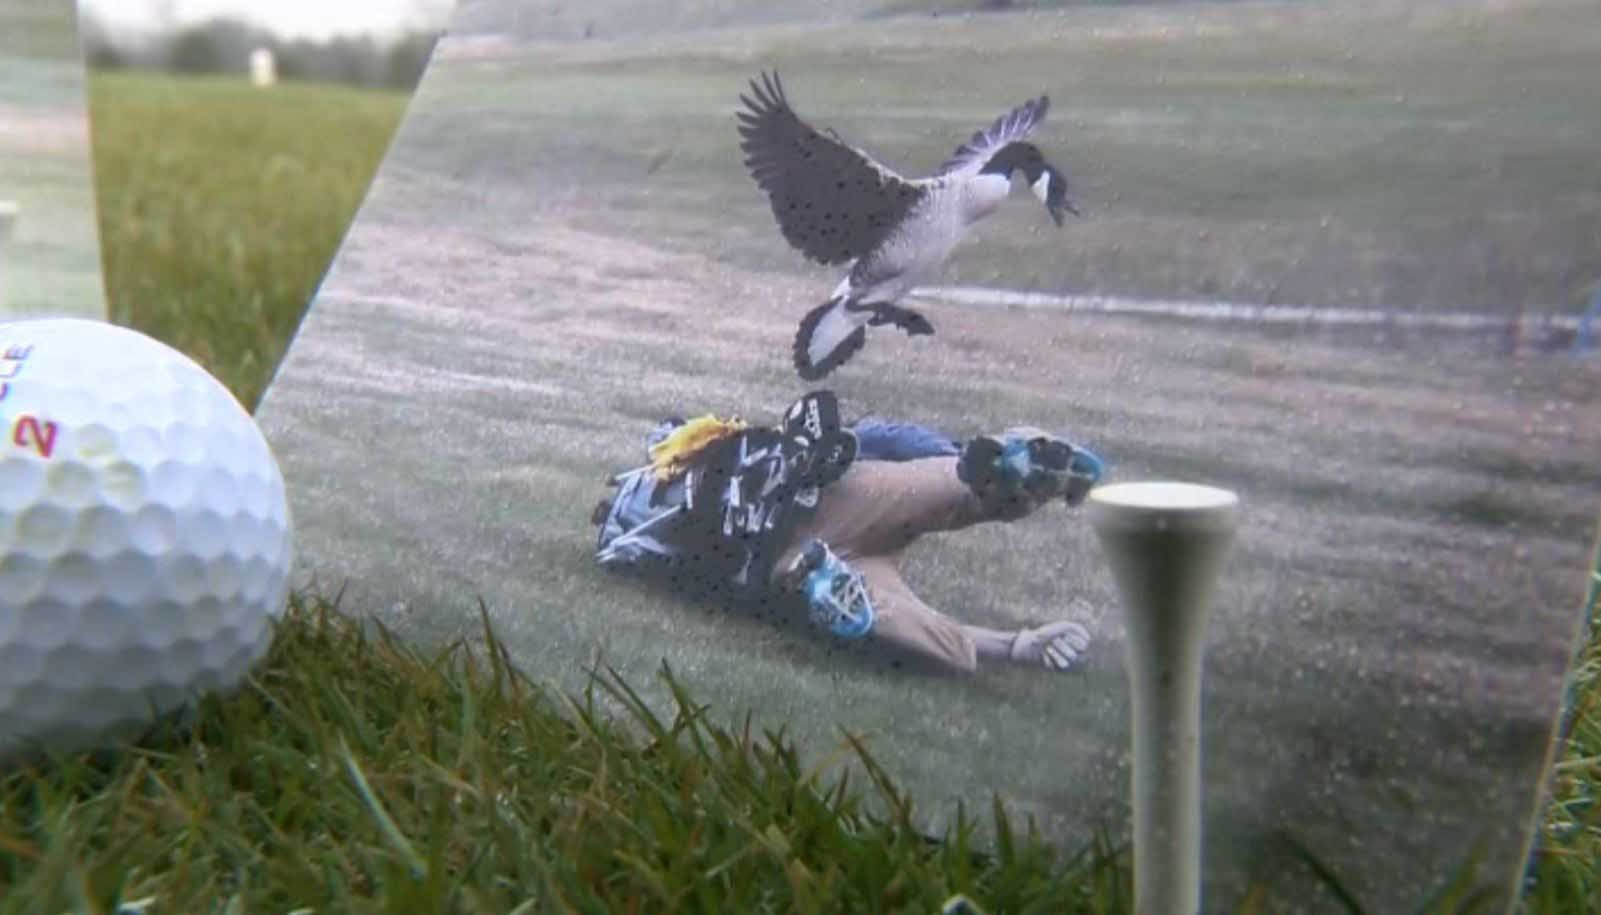 Golfer chased down by goose - KVOA | KVOA.com | Tucson, Arizona